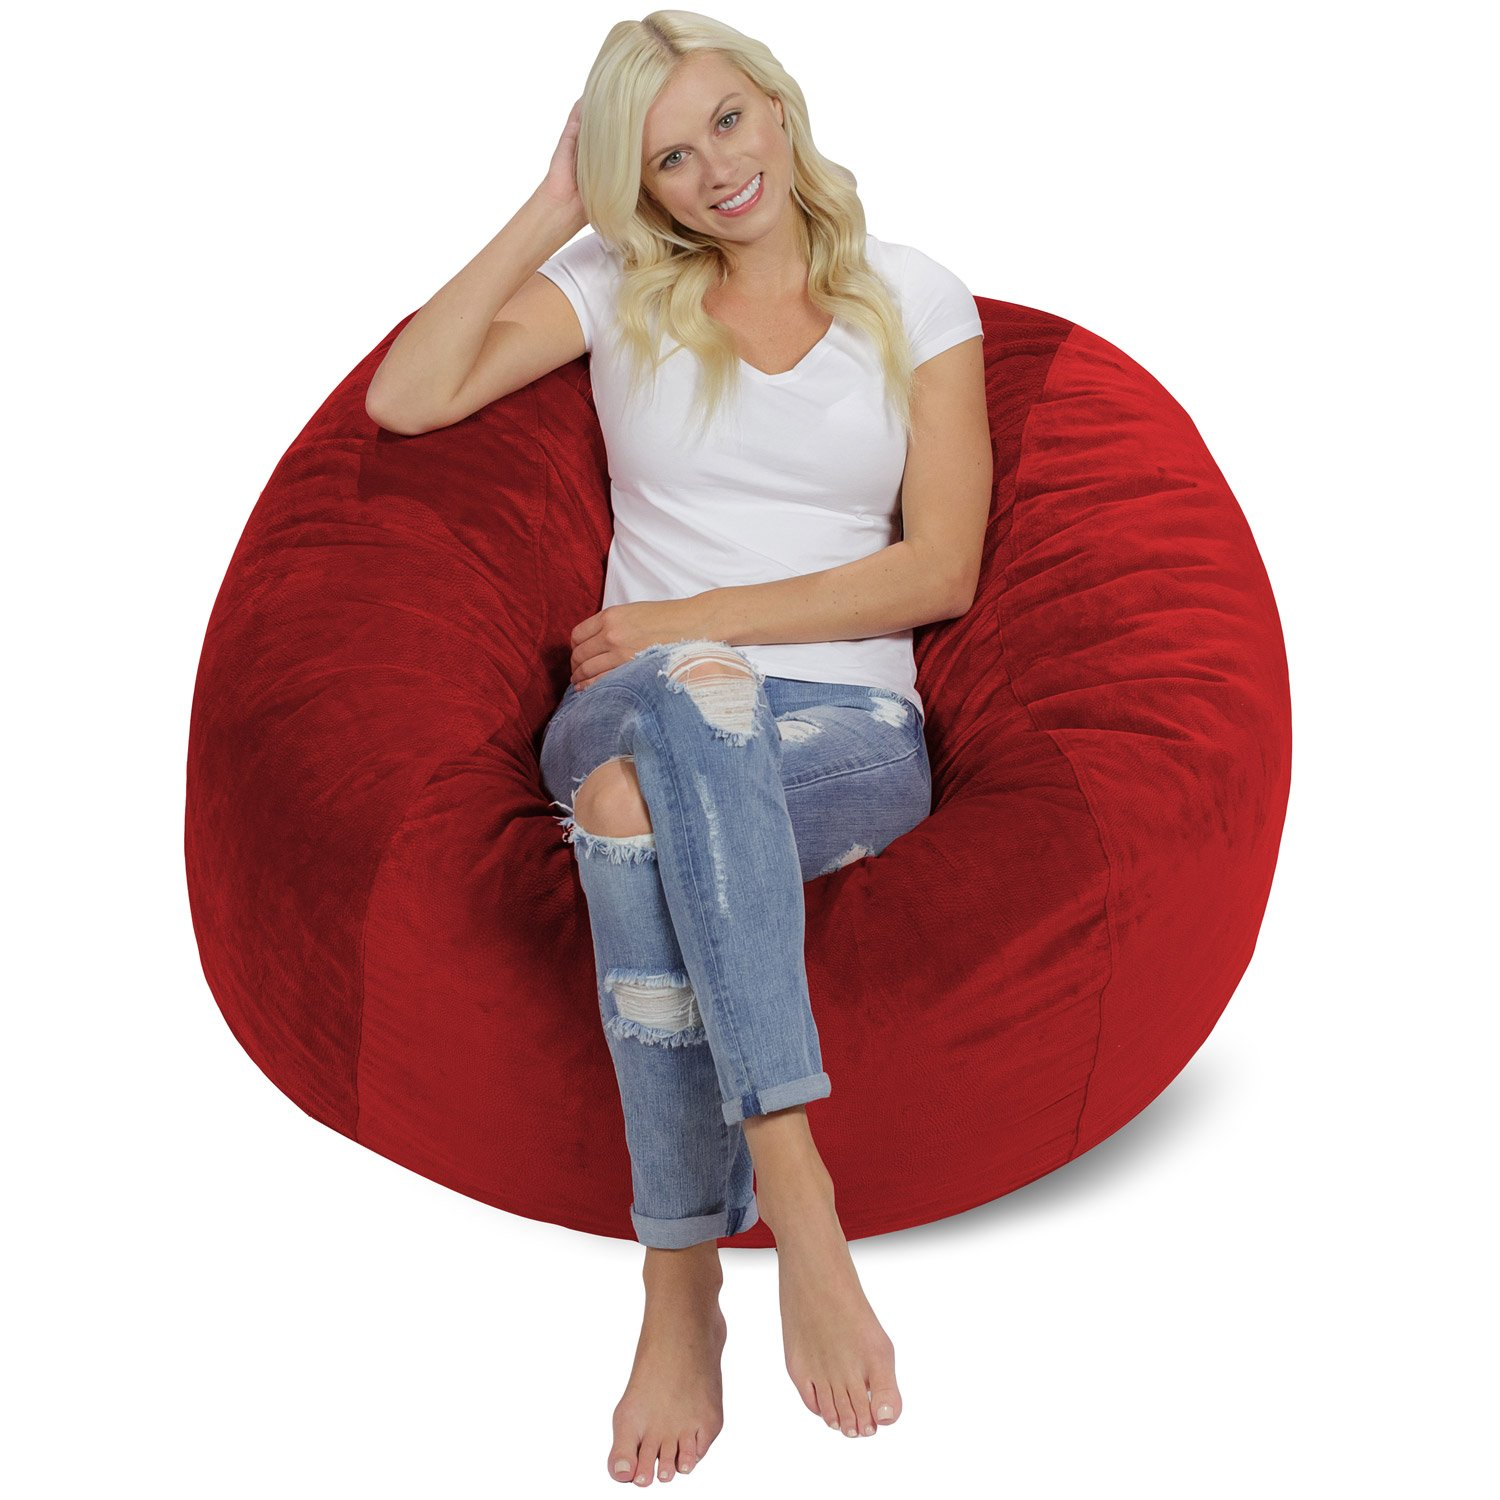 Chill Sack Bean Bag Chair: Giant 4' Memory Foam Furniture Bean Bag - Big Sofa with Soft Micro Fiber Cover - Red Pebble by Chill Sack